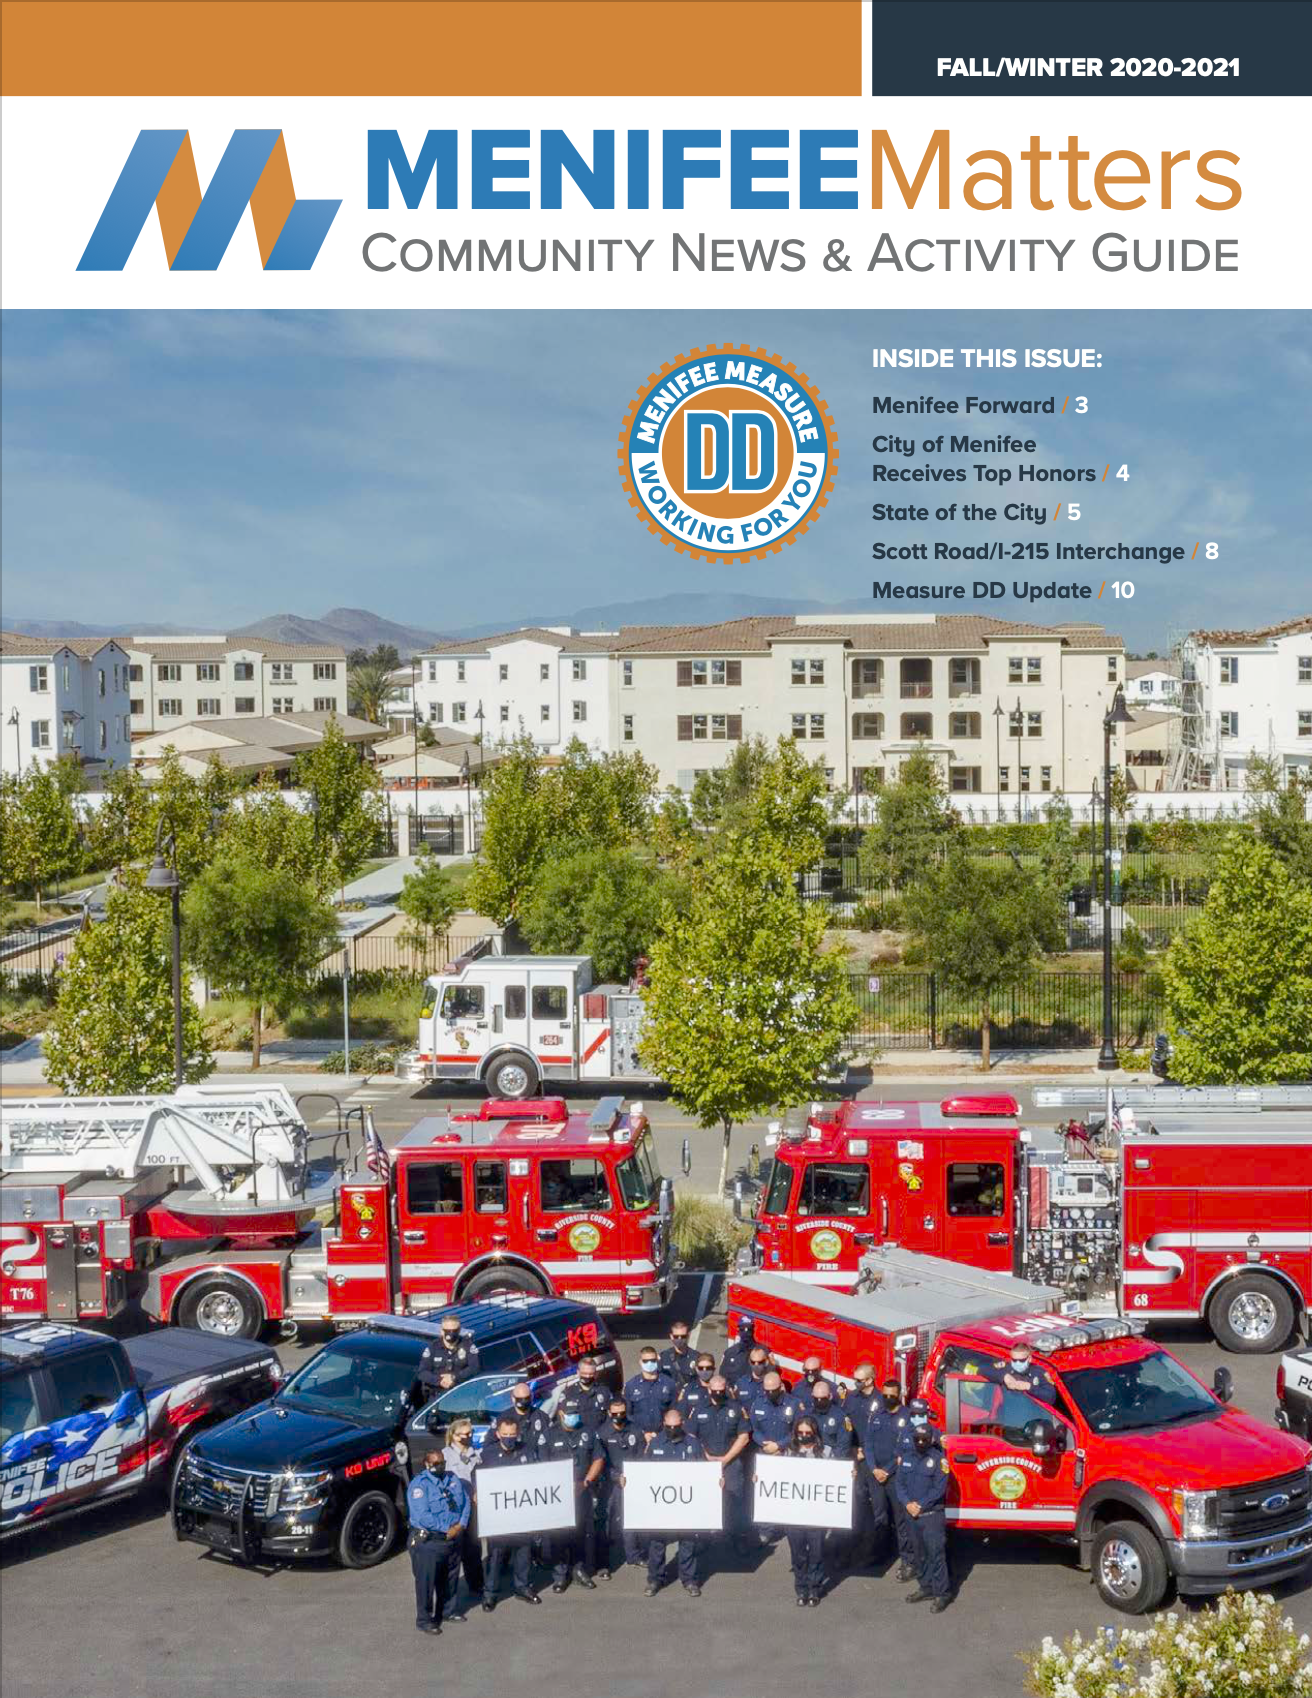 Menifee Matters Fall/Winter 2020-2021: Click here to view the current issue of Menifee Matters!